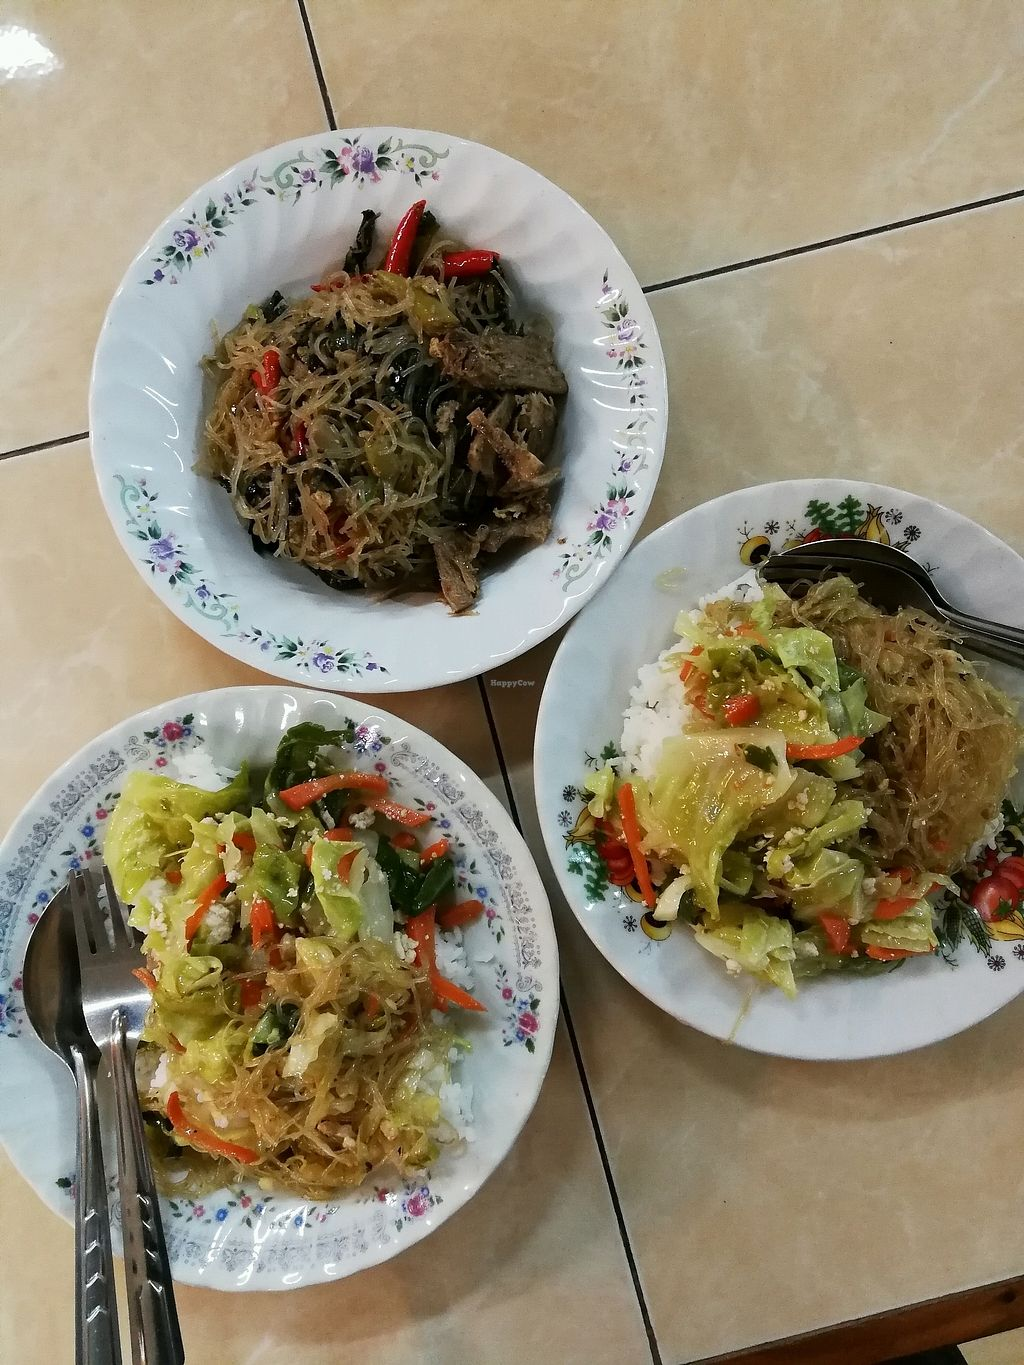 """Photo of Che Cheng  by <a href=""""/members/profile/RawChefYin"""">RawChefYin</a> <br/>rice, vegetables, glass noodles  <br/> January 26, 2018  - <a href='/contact/abuse/image/9887/350997'>Report</a>"""